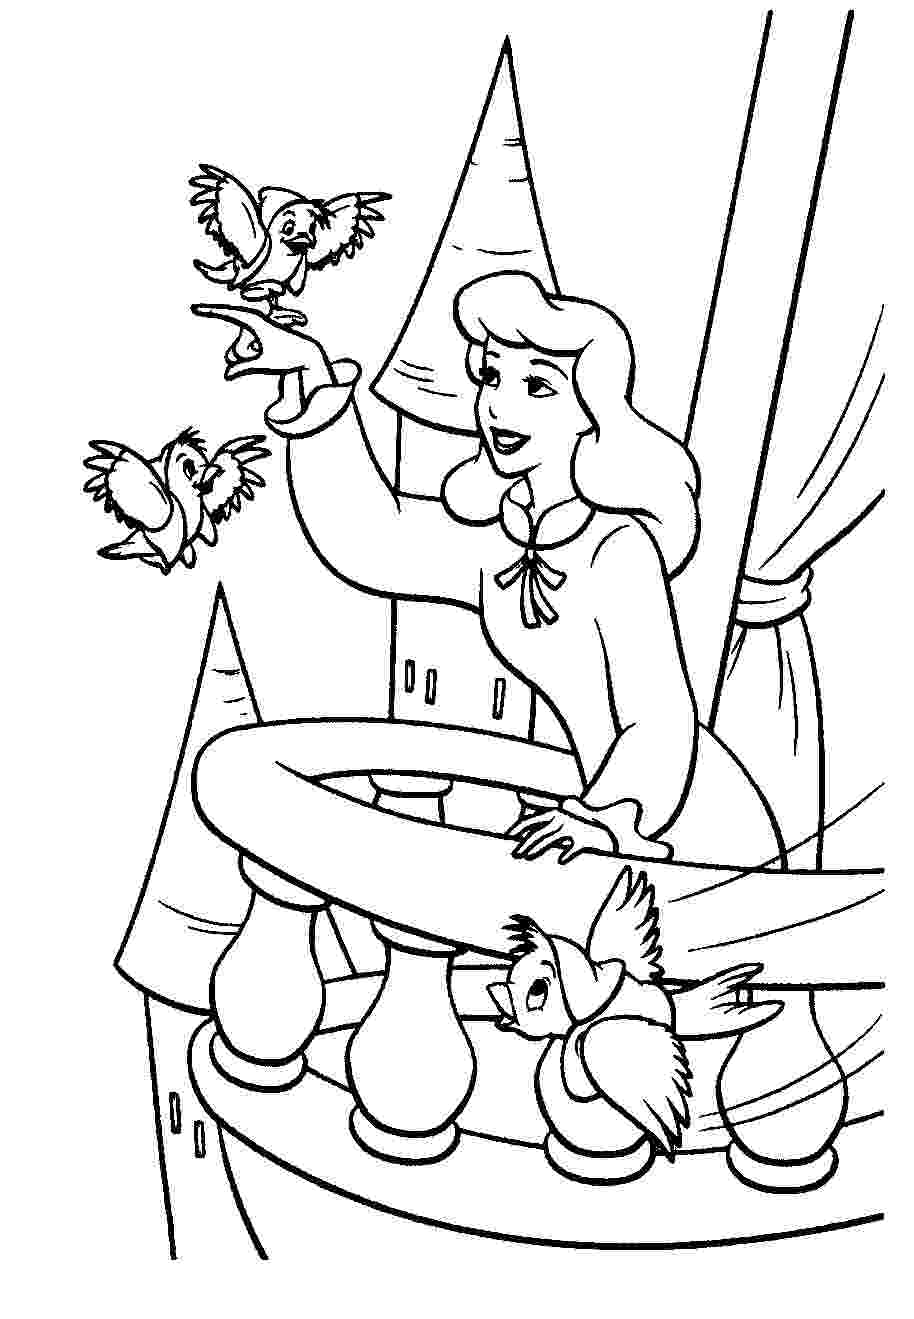 cinderella coloring pages free free printable cinderella activity sheets and coloring coloring pages free cinderella